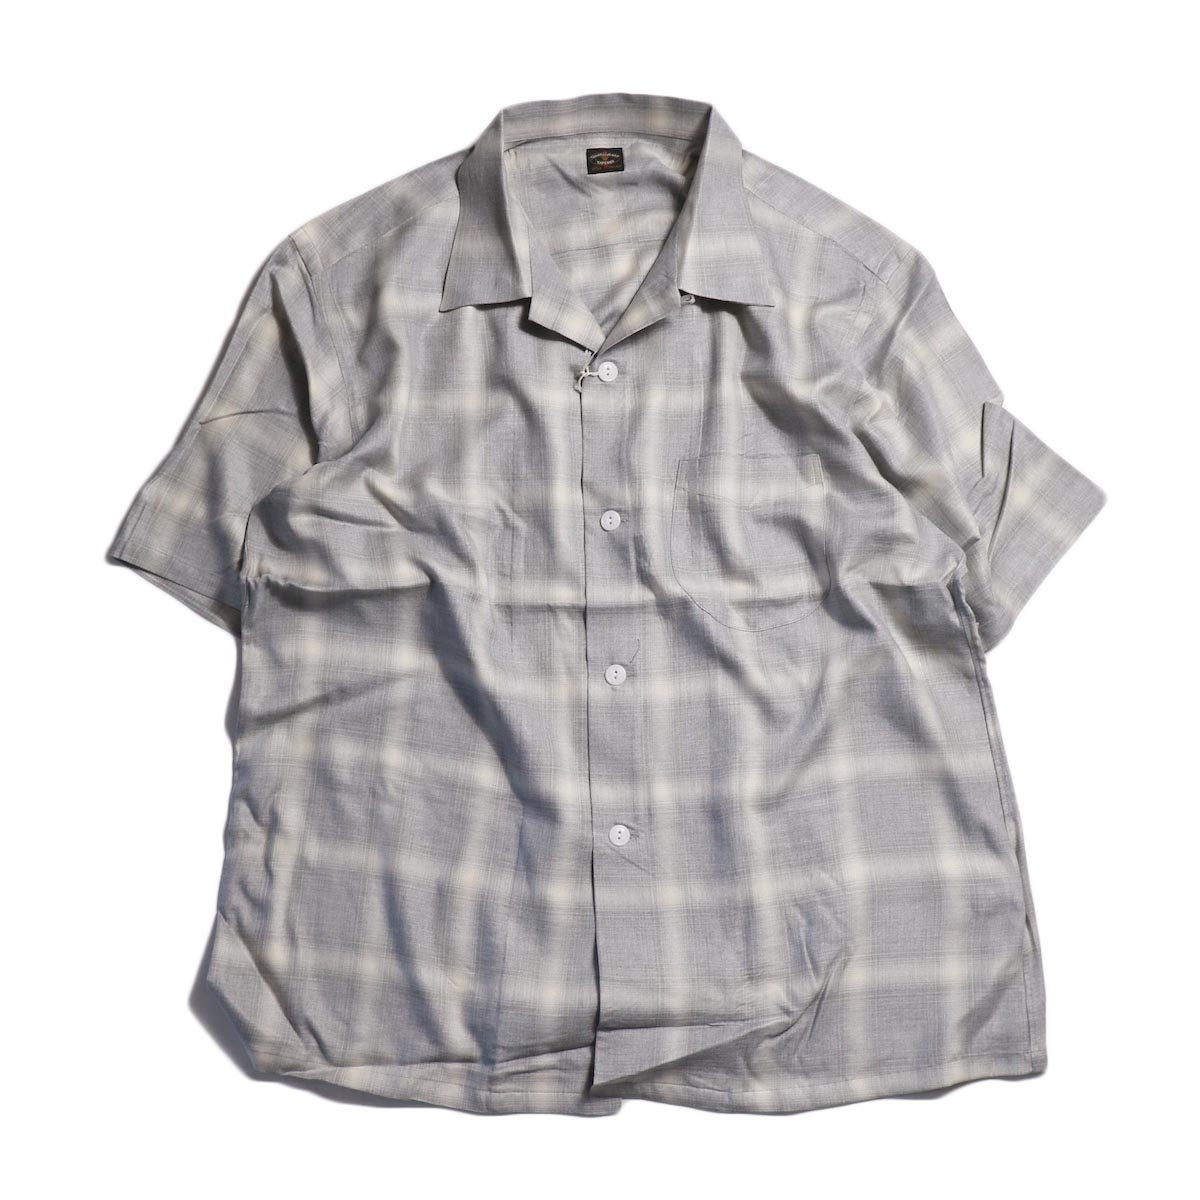 TOWN CRAFT / OMBLE OPEN S/S SHIRTS -Gray